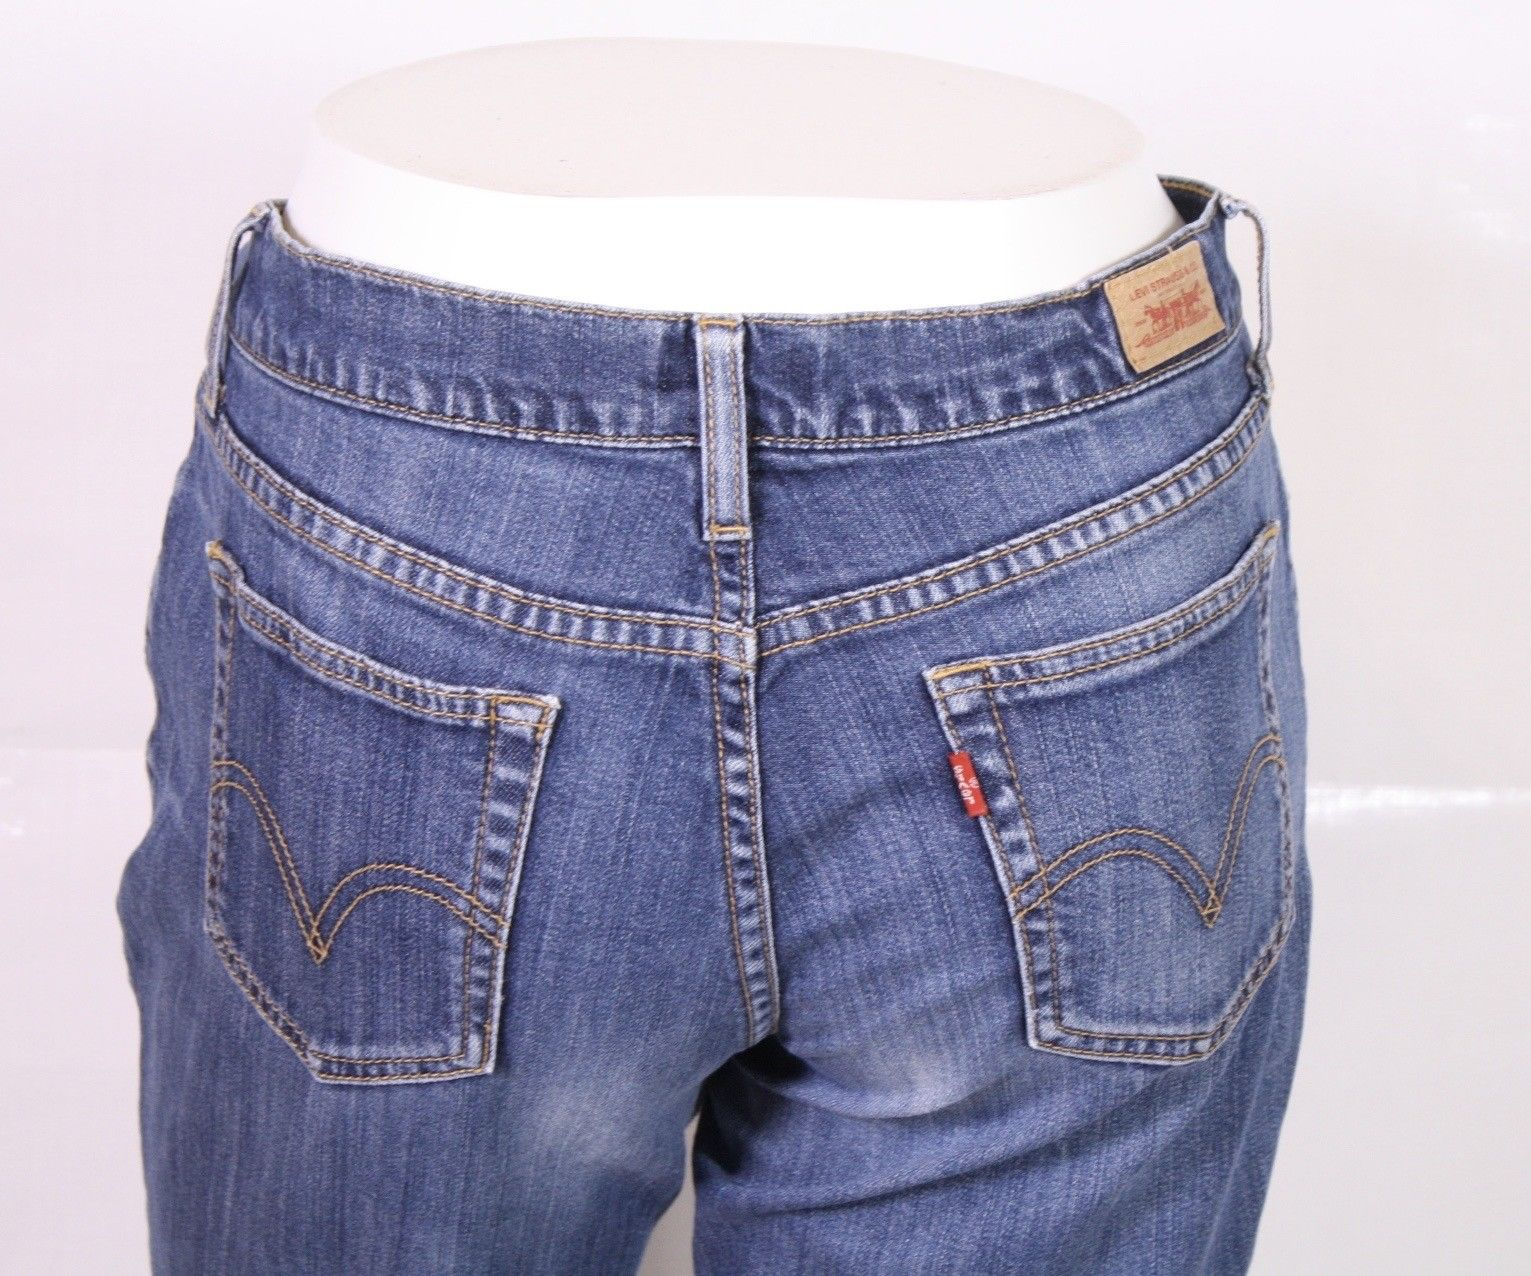 BJ1-59 Levis Damen Bootcut Jeans blau W31  L32 Stretch used look